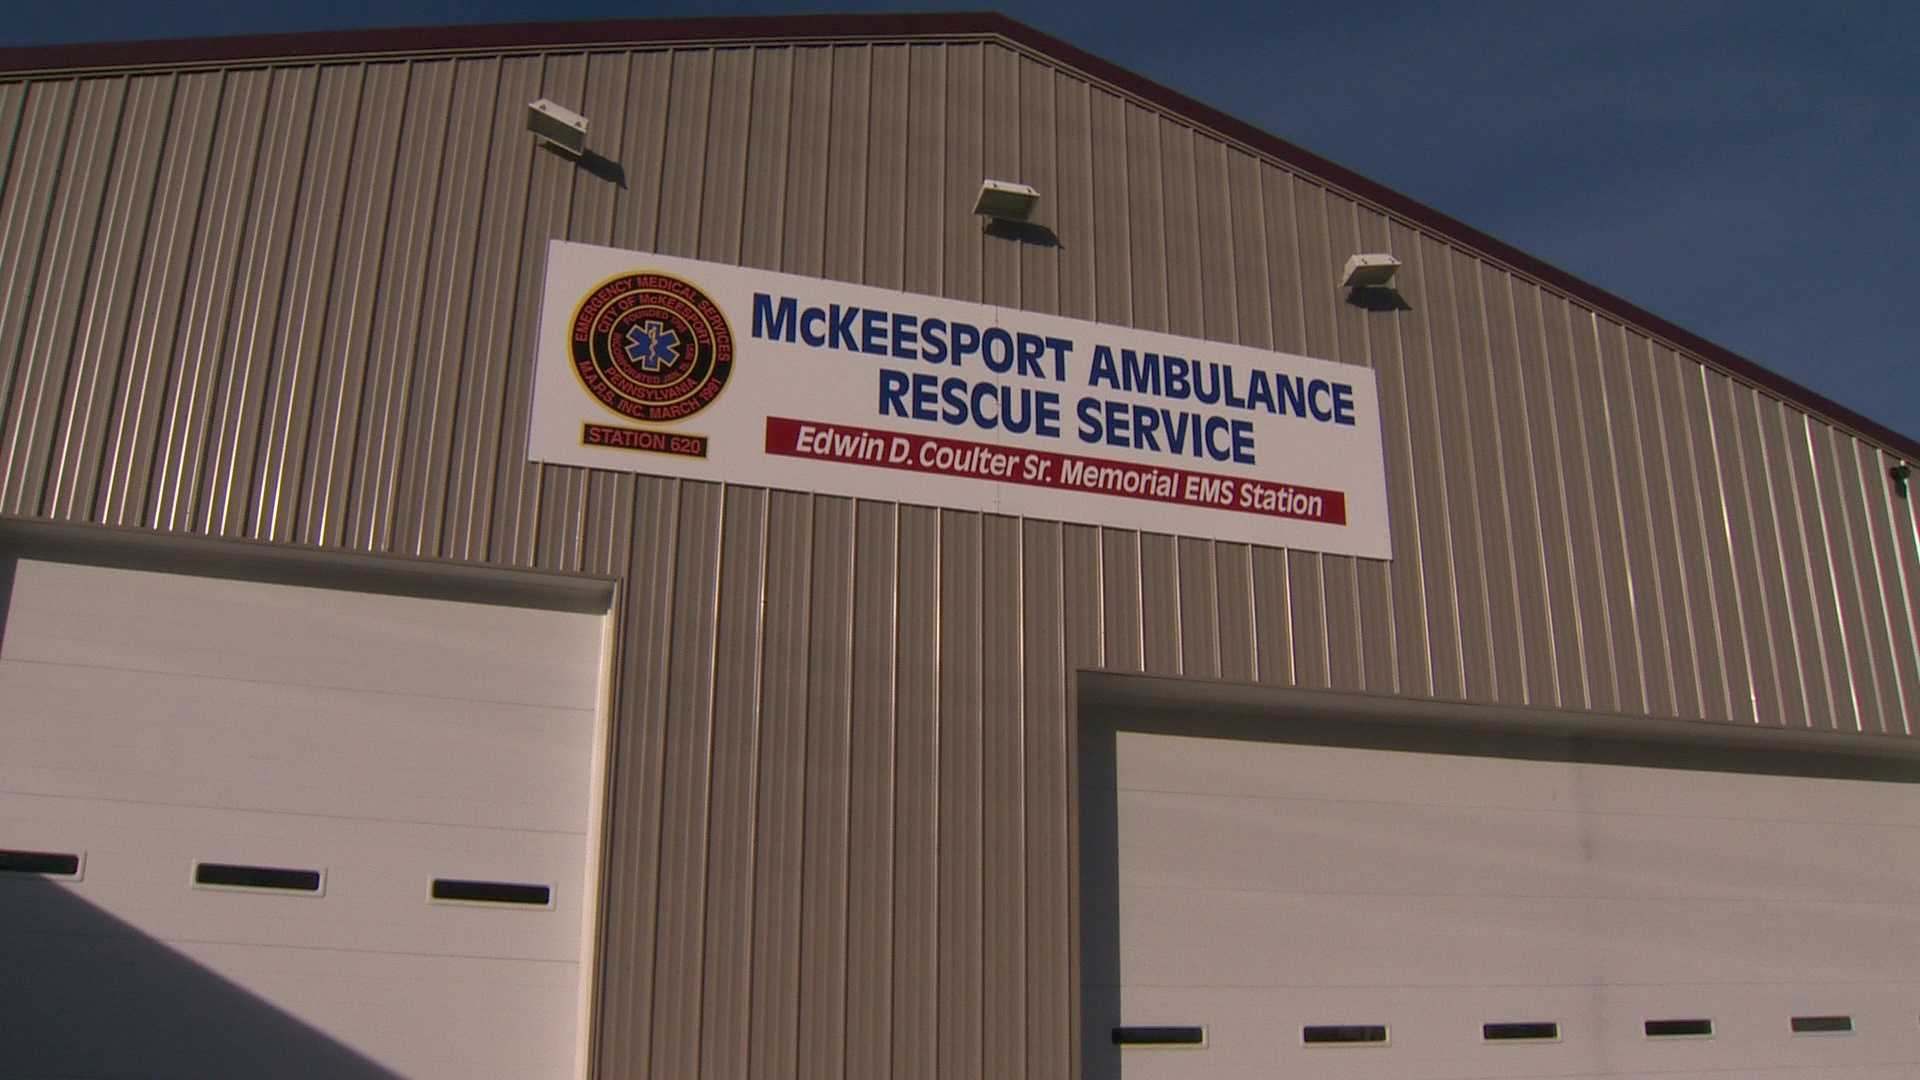 Police are investigating after shots were fired in McKeesport Saturday morning, striking multiple buildings, including the McKeesport ambulance service.